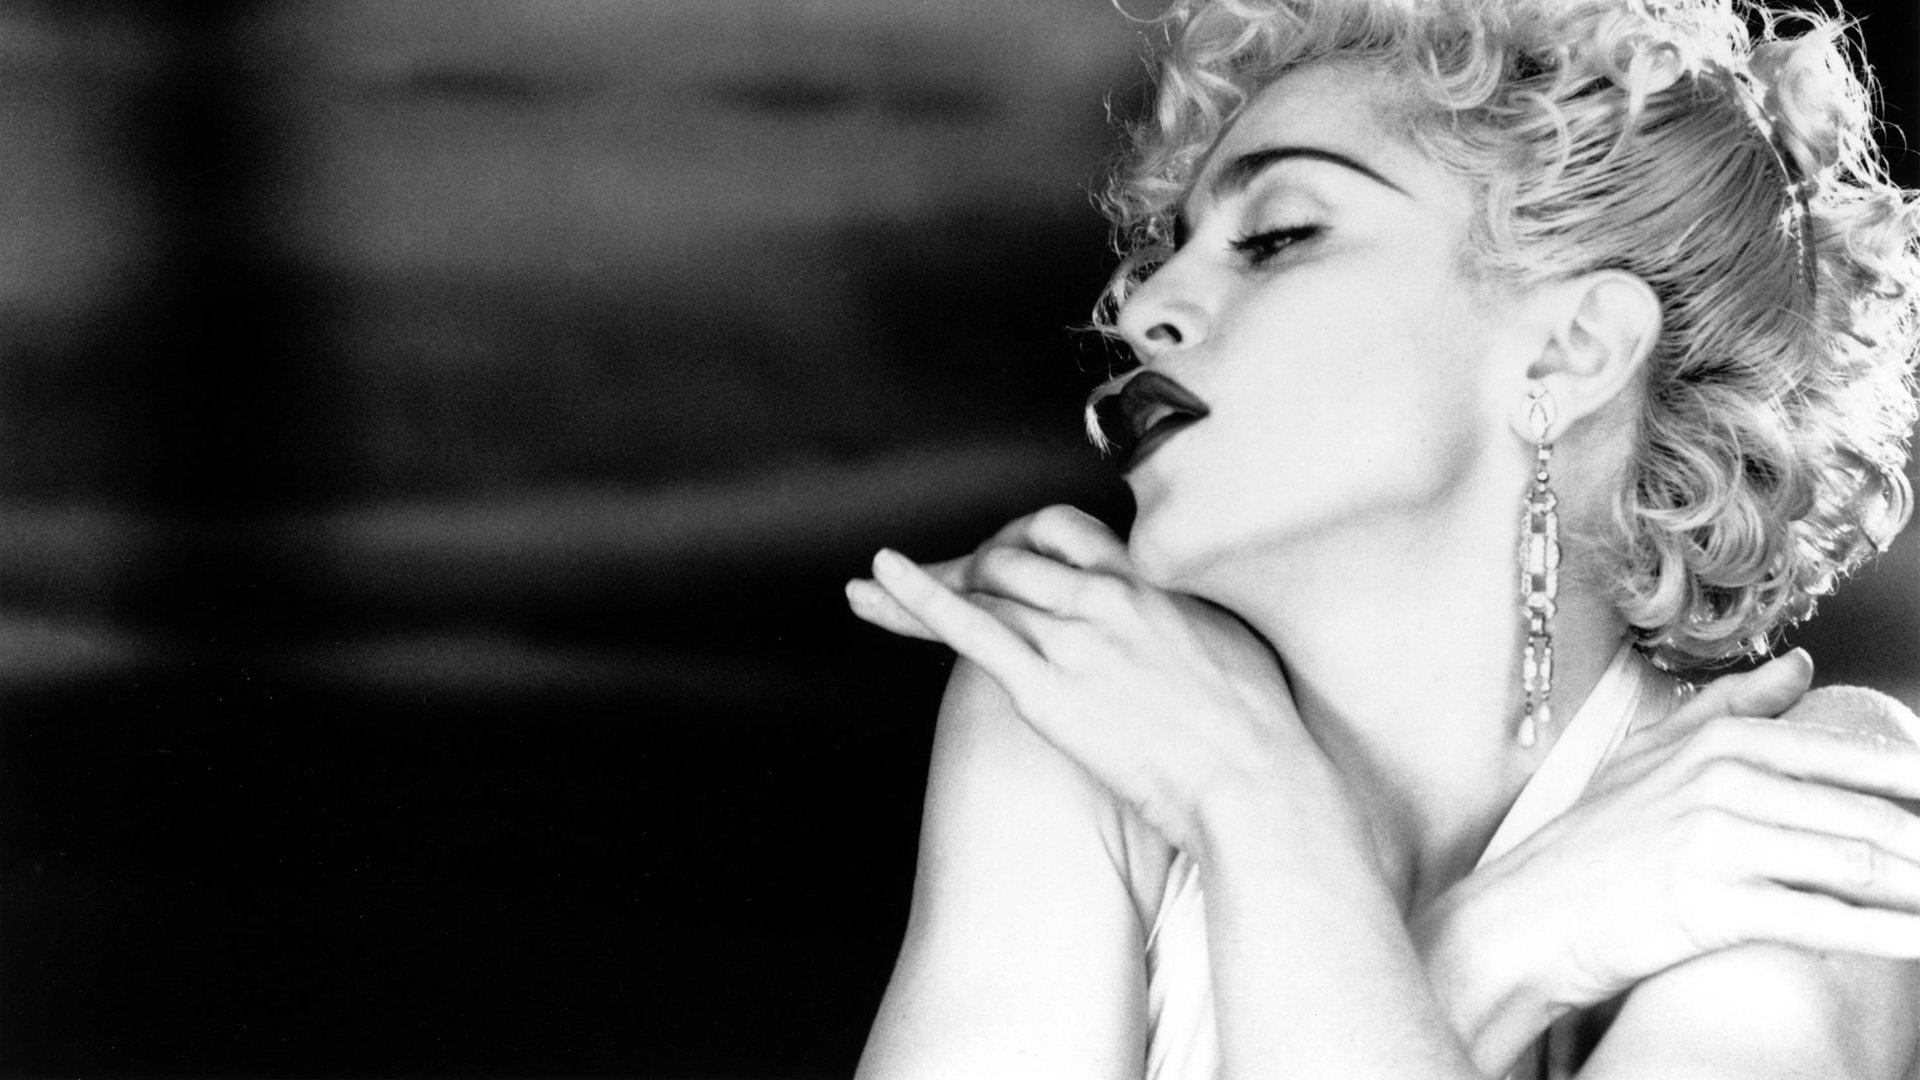 Madonna full hd wallpaper and background image 1920x1080 - Madonna hd images ...